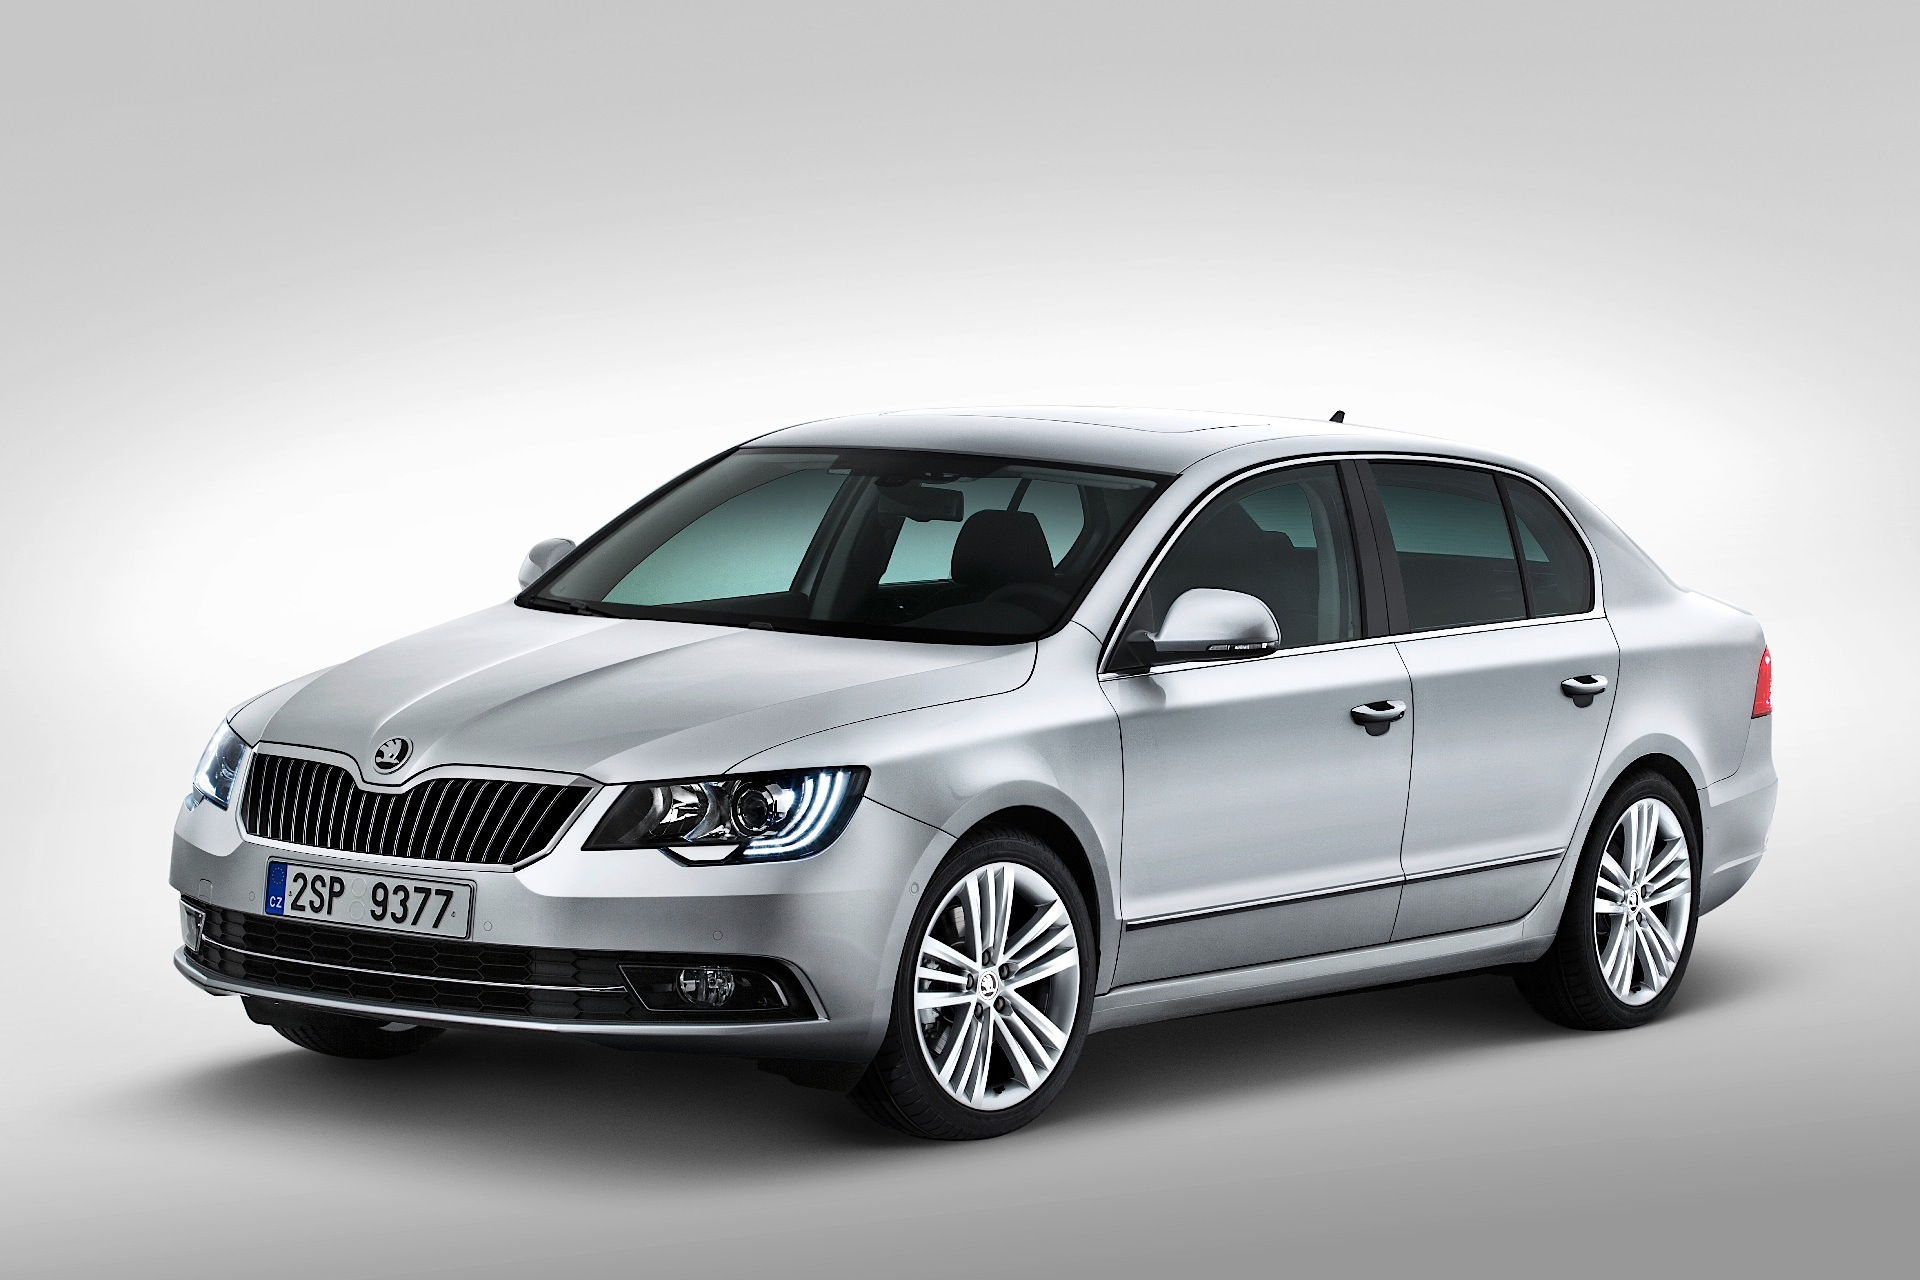 skoda superb specs 2013 2014 2015 autoevolution. Black Bedroom Furniture Sets. Home Design Ideas